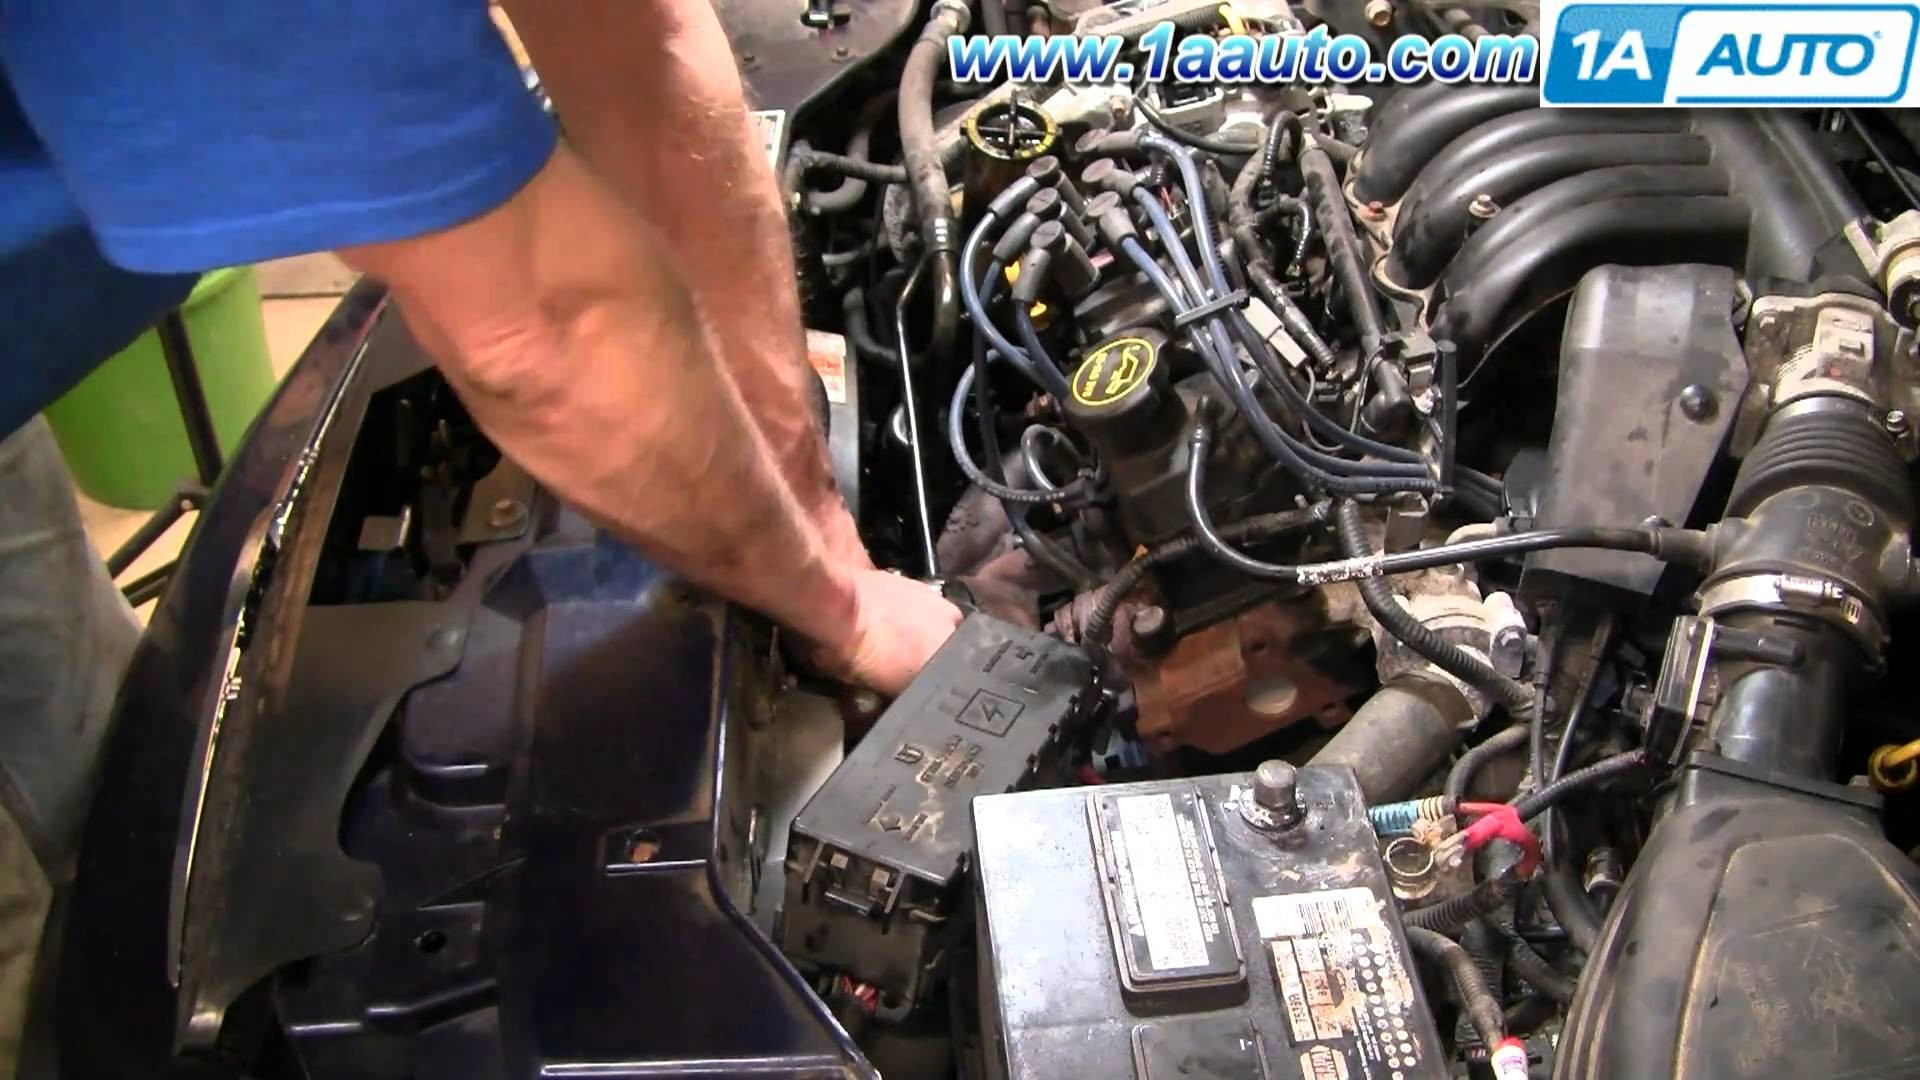 2007 ford Taurus Engine Diagram How to Install Replace Radiator Engine Cooling Fan ford 96 07 Taurus Of 2007 ford Taurus Engine Diagram